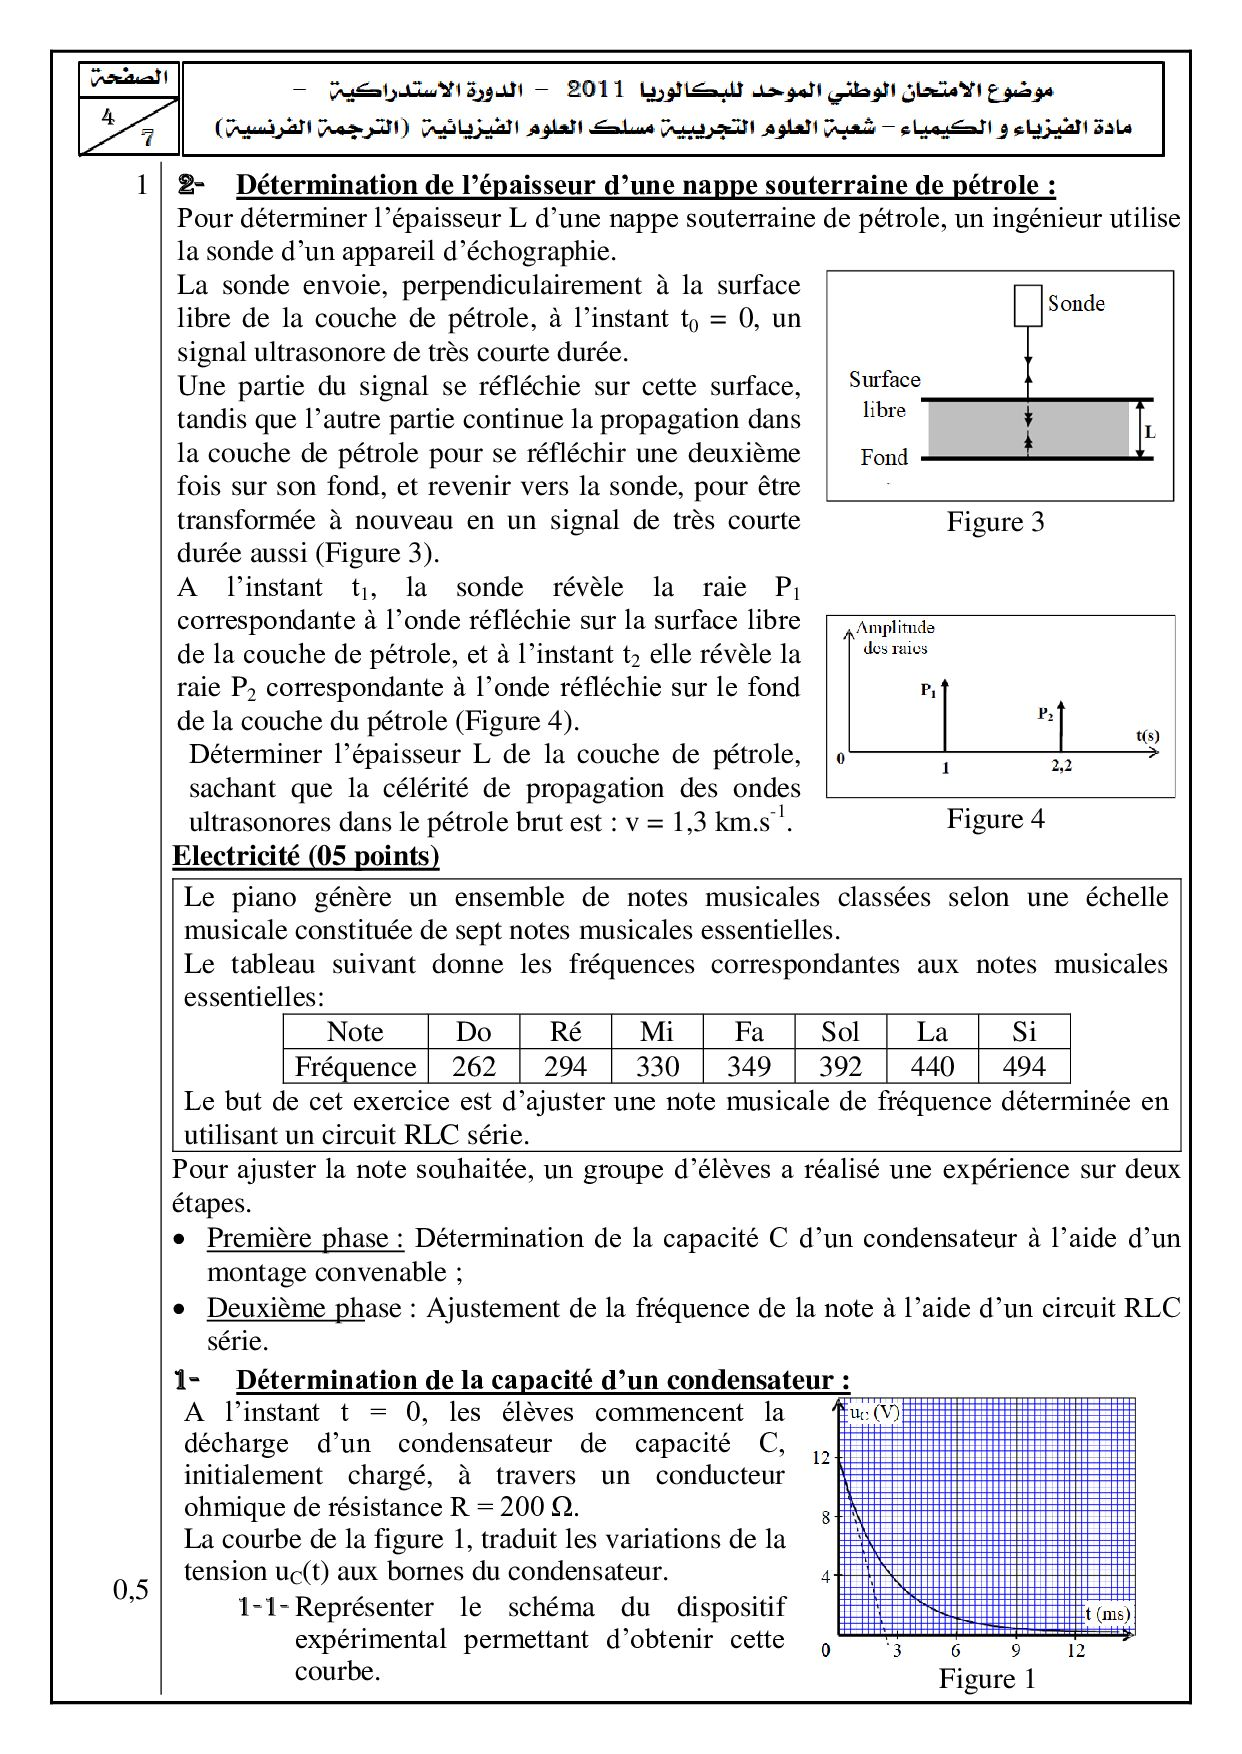 Examen National Physique-Chimie SPC 2011 Rattrapage - Sujet4.jpg